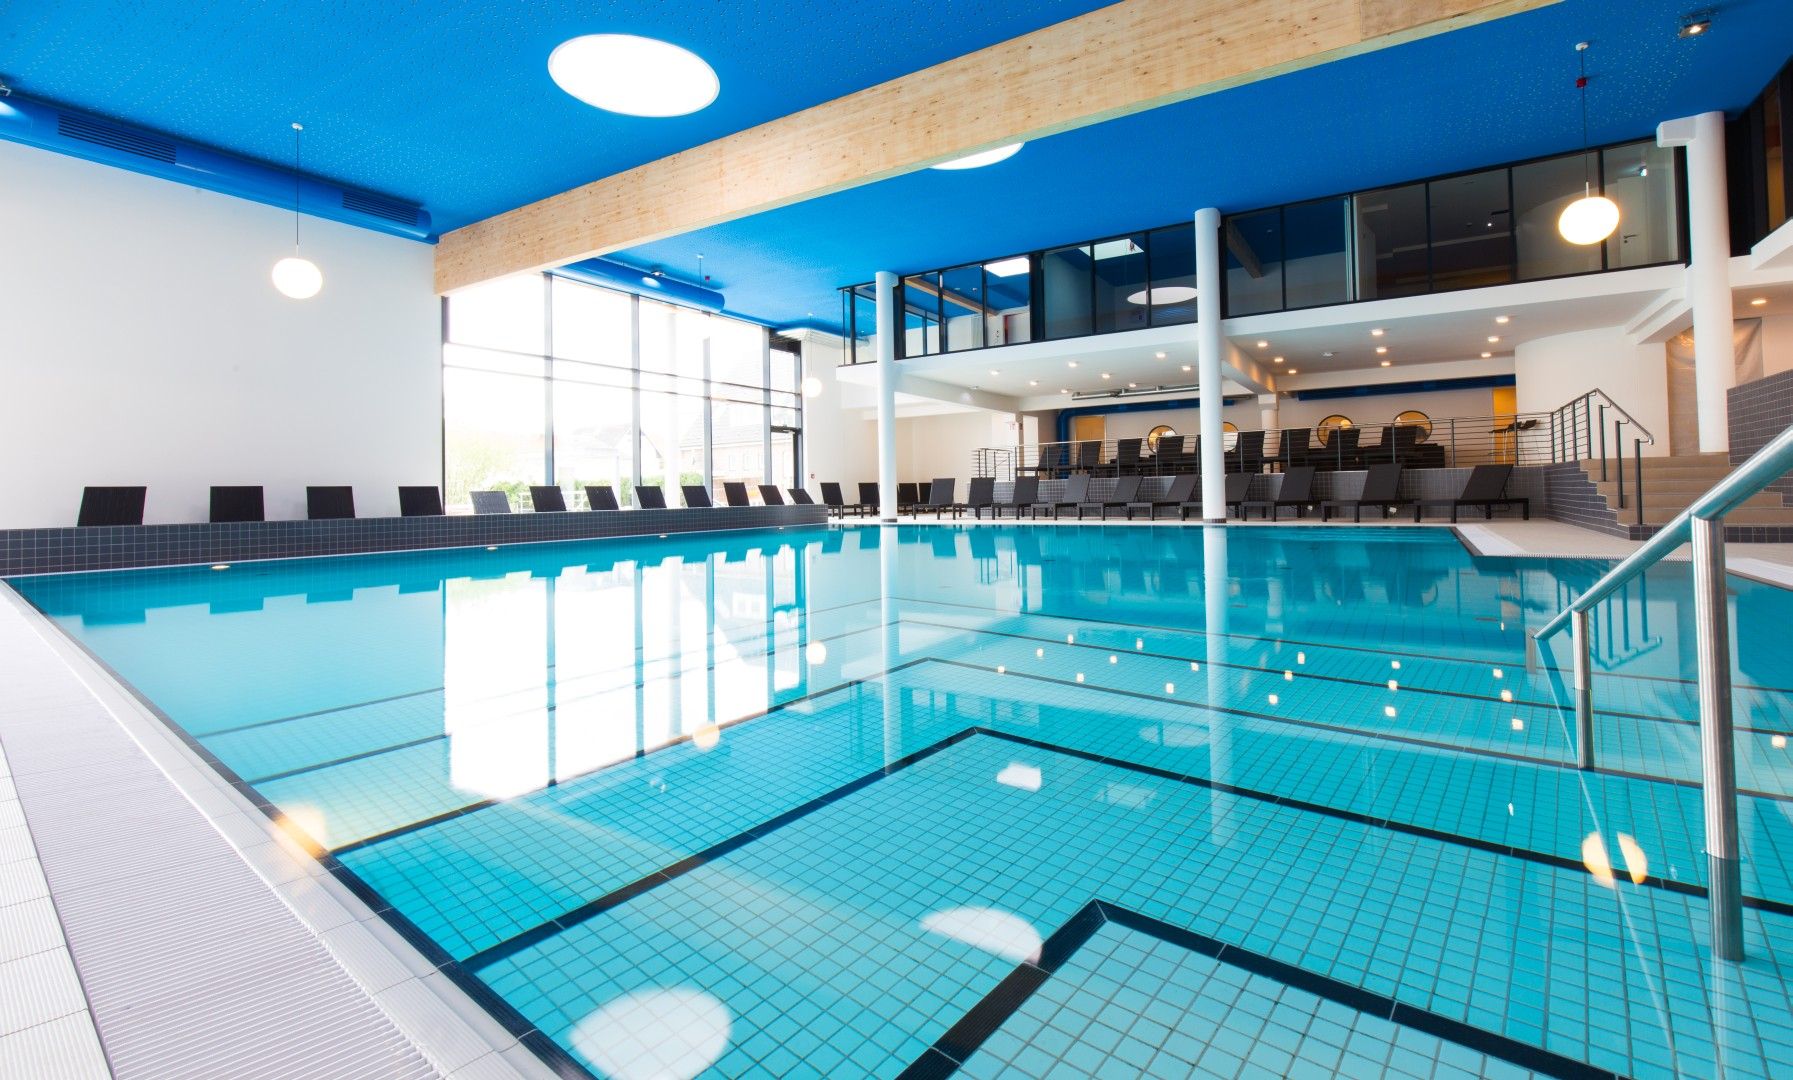 Pool sauna fitness studio carat hotel residenz for Schwimmbad pool